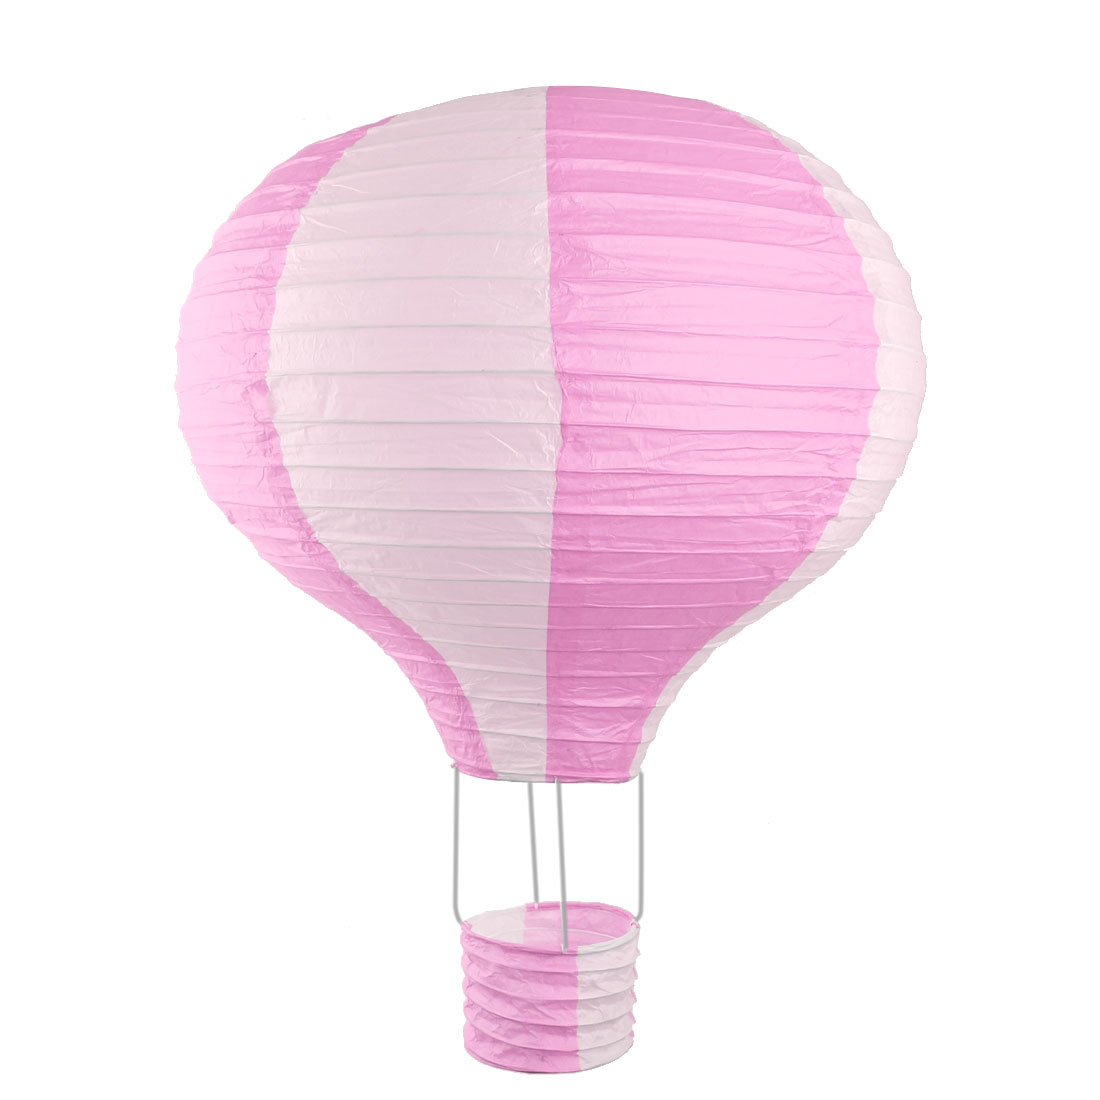 Household Party Paper Lightless Hanging DIY Decor Hot Air Balloon Lantern Pink White 16 Inch Dia